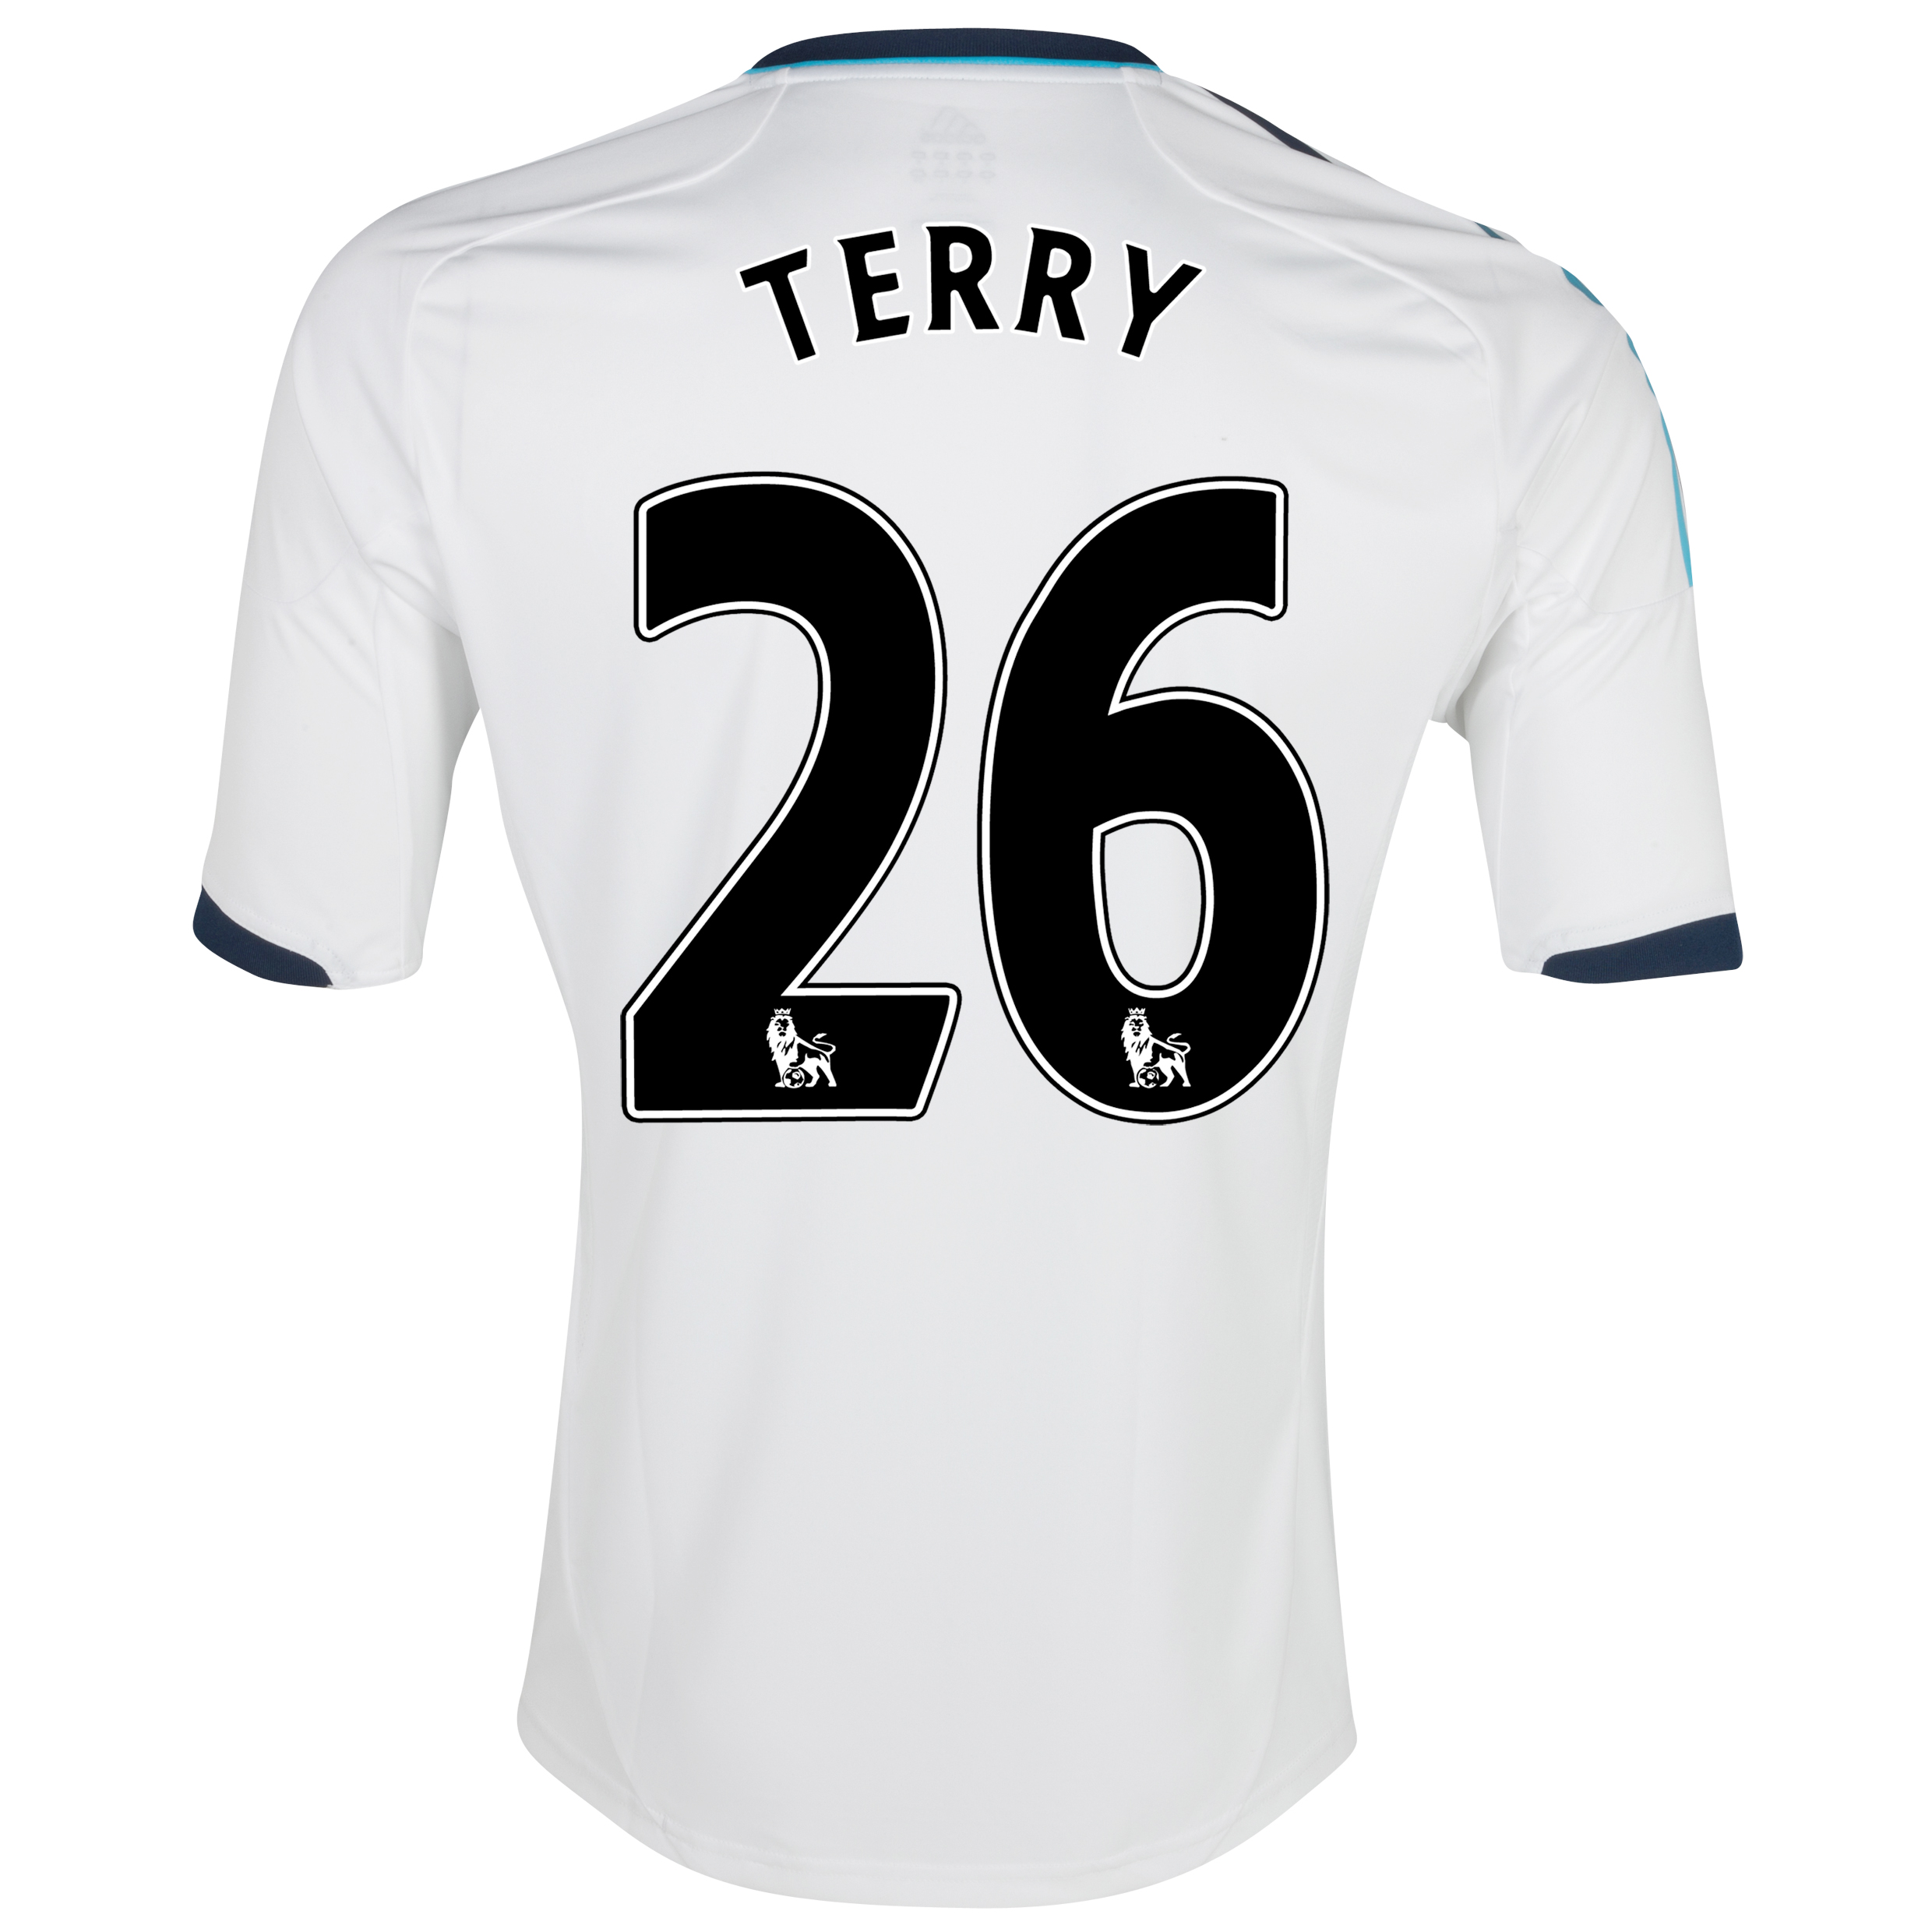 Chelsea Away Shirt 2012/13 with Terry 26 printing